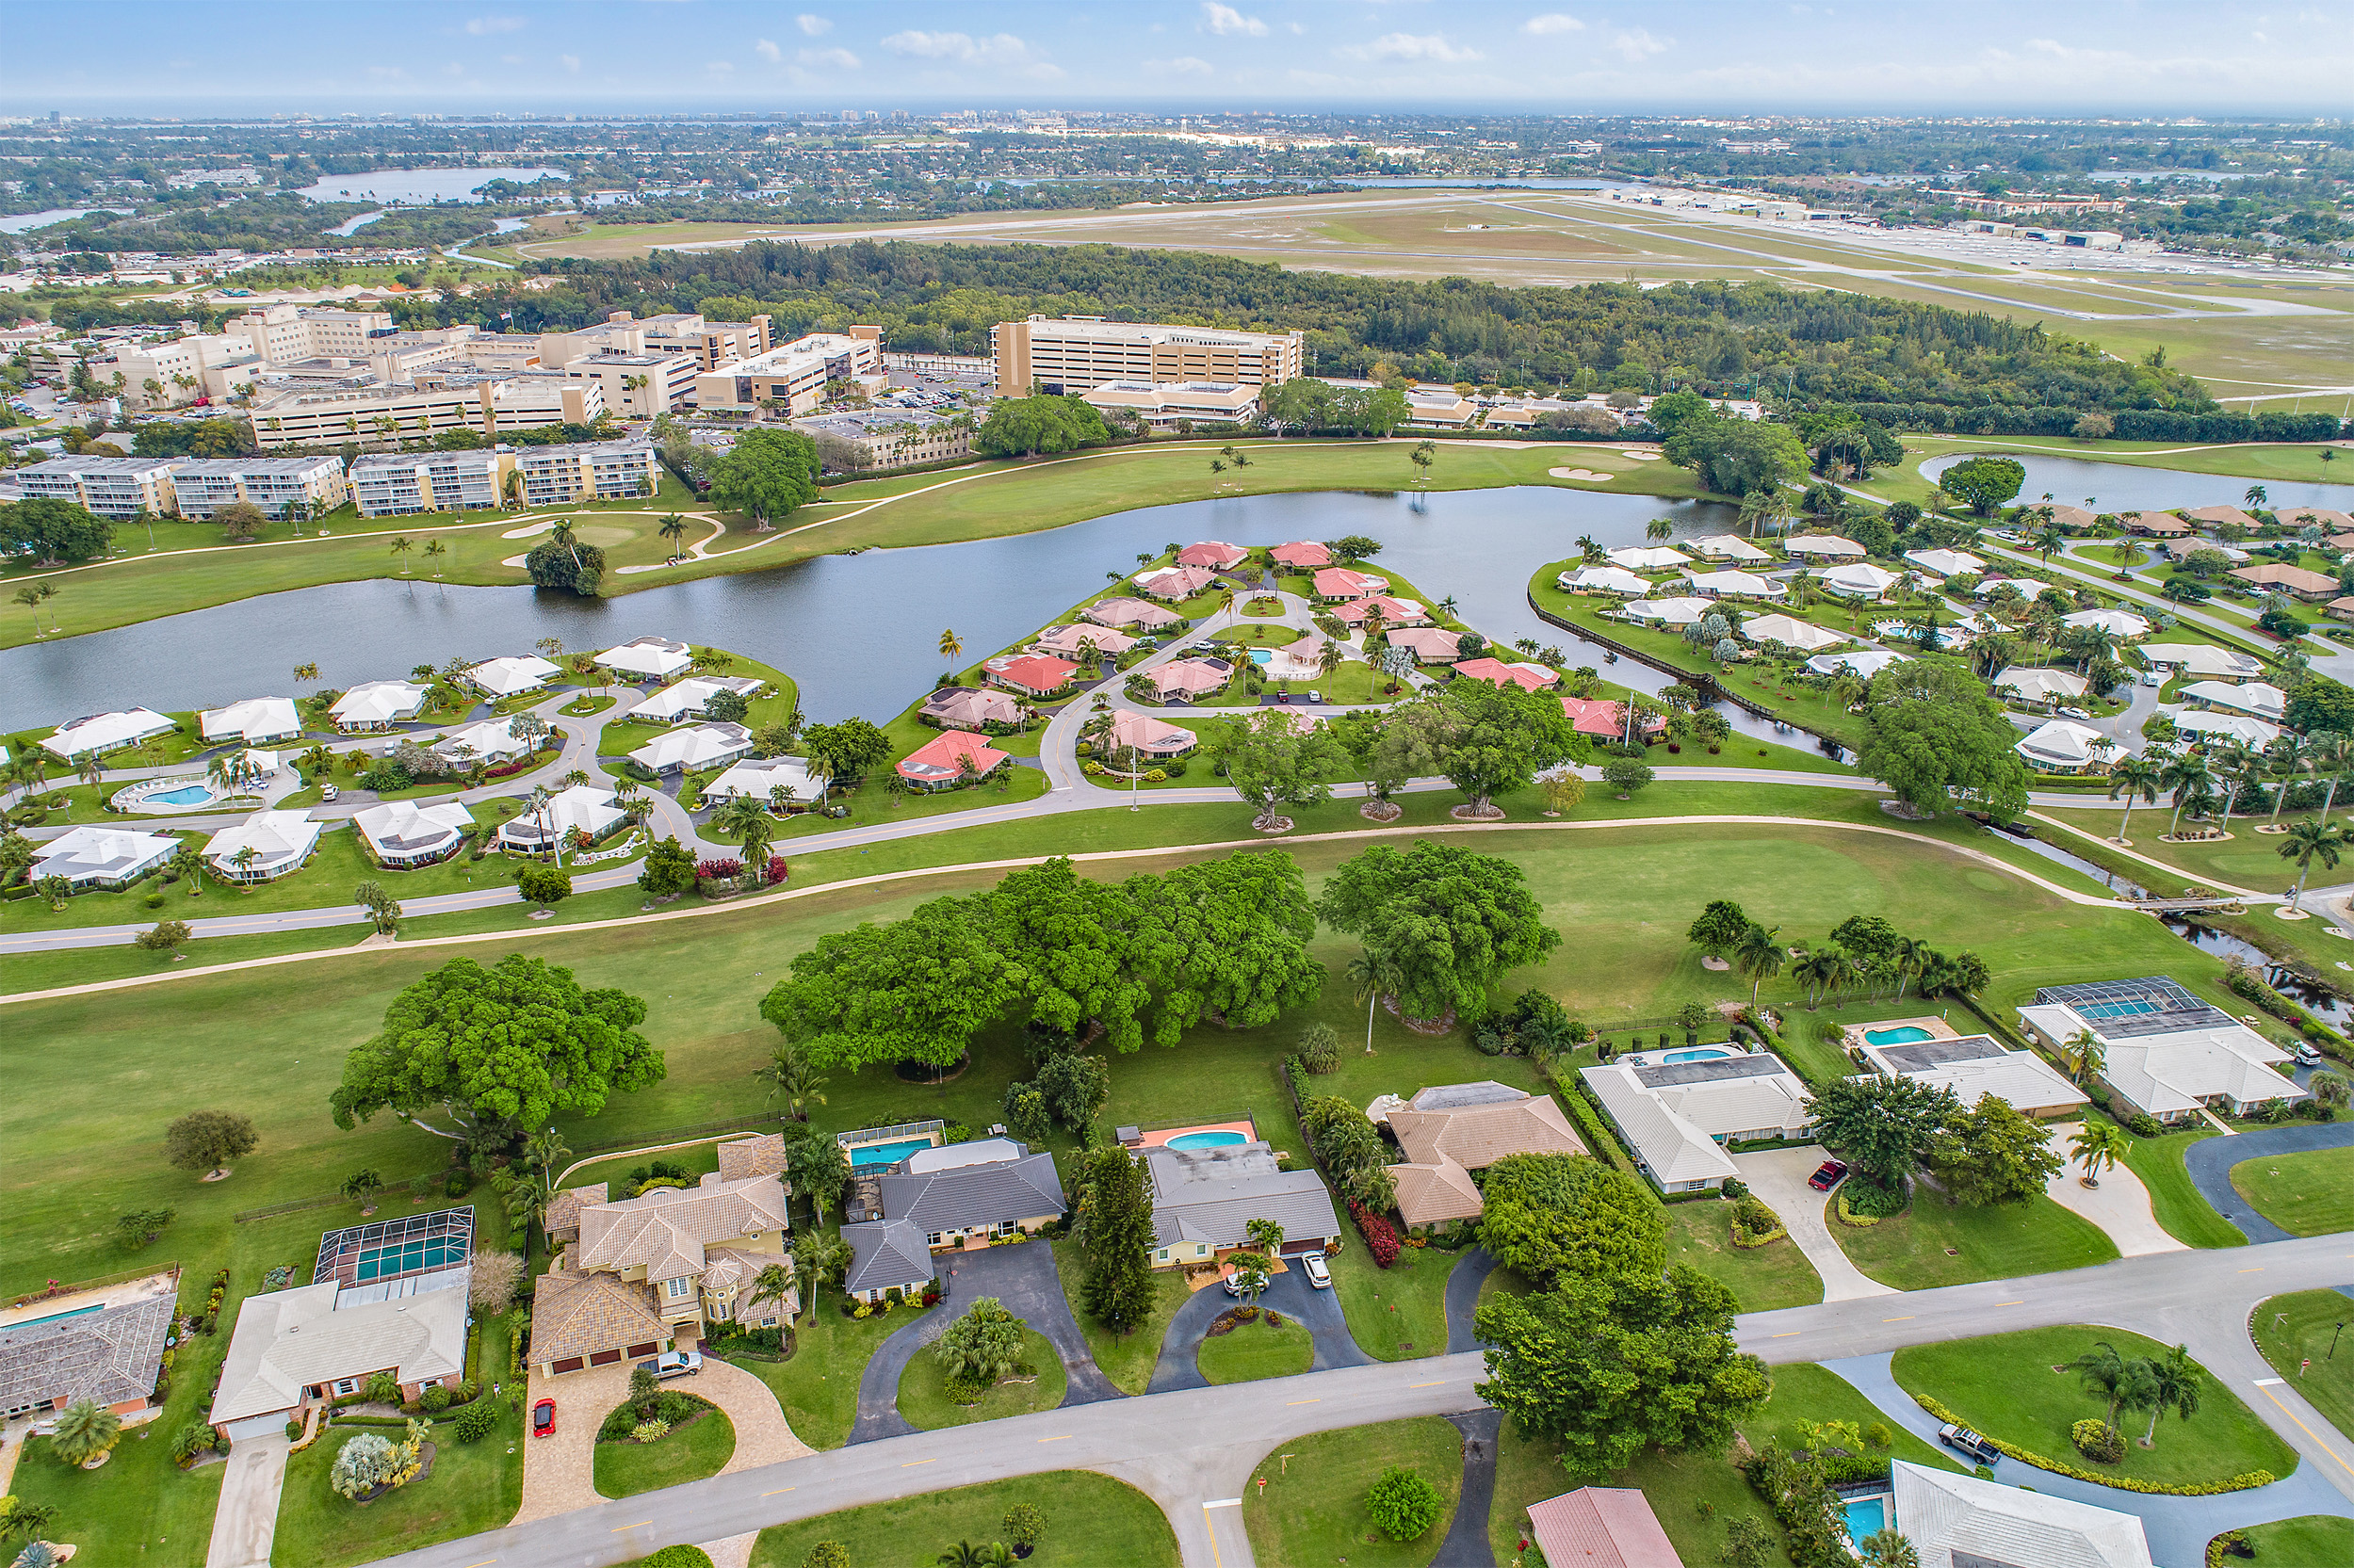 City of Atlantis: Q4 2019 Residential Market Report & 2019 Year In Review